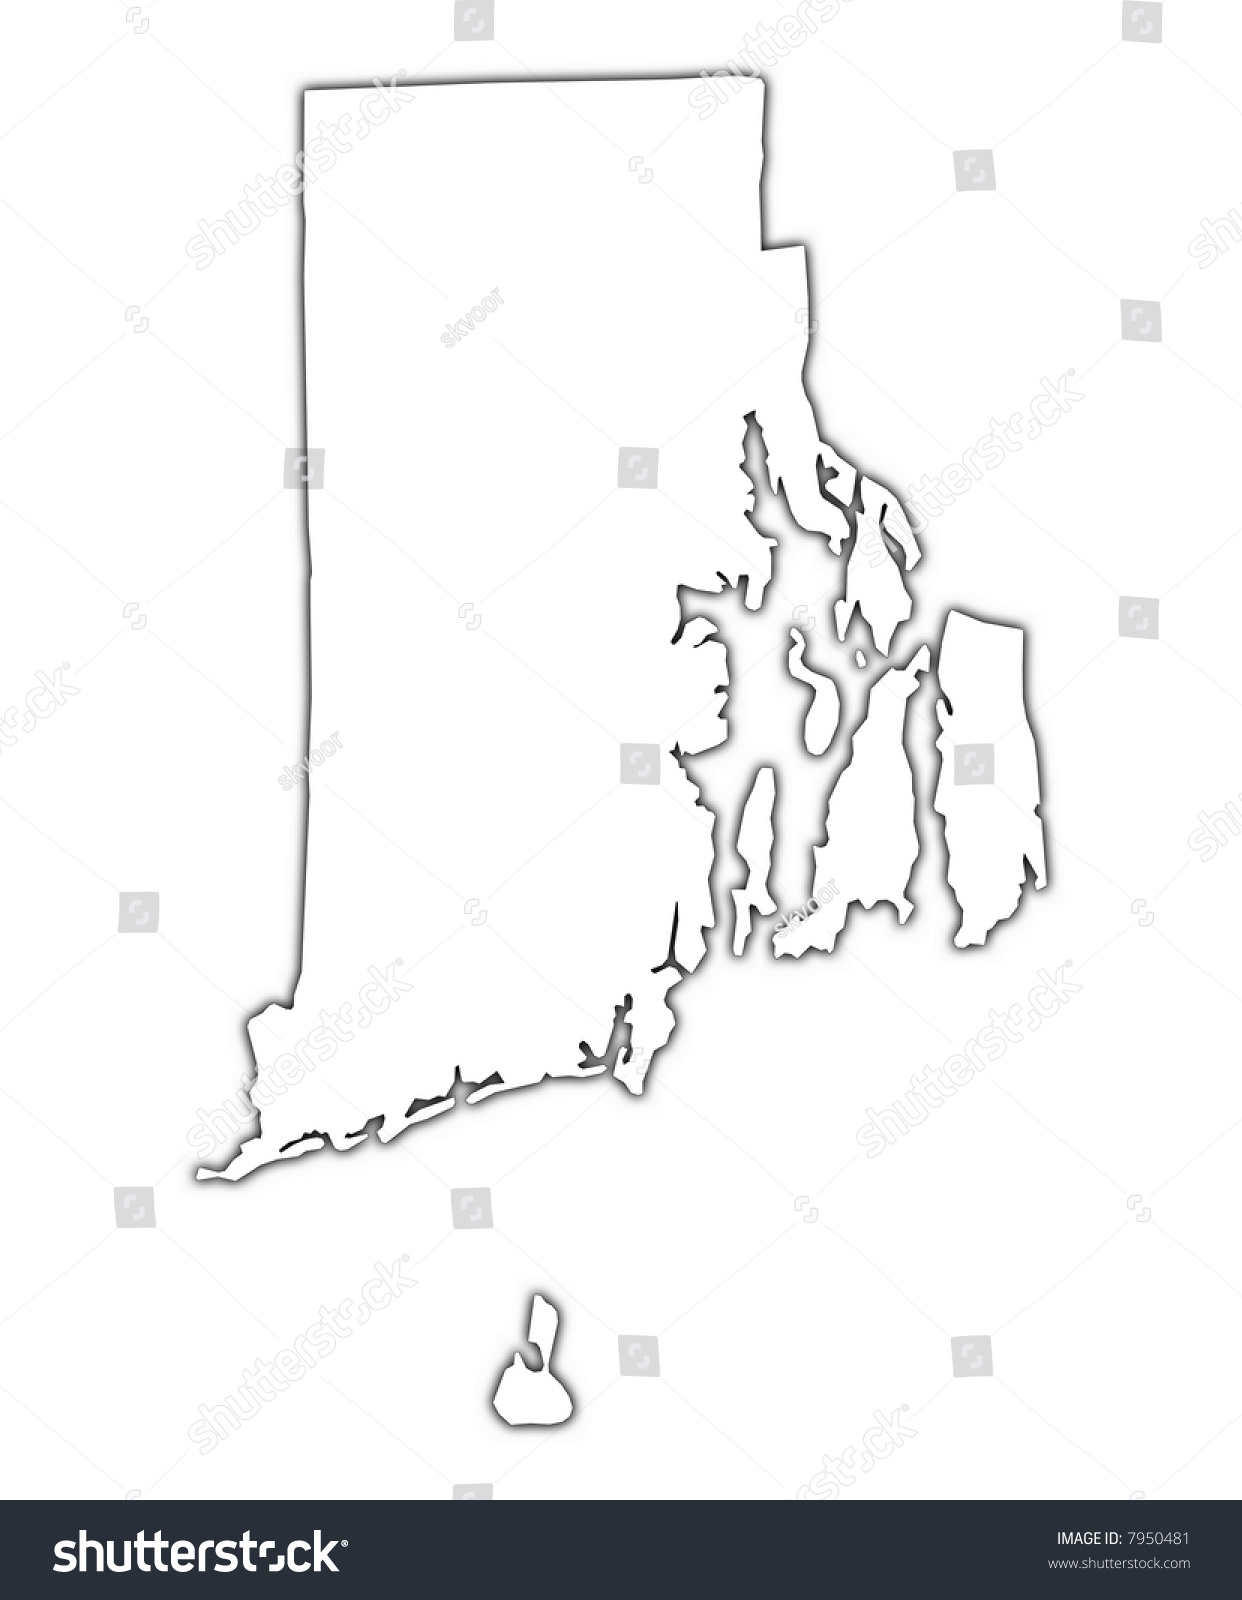 Rhode Island Usa Outline Map With Shadow Detailed Mercator Projection